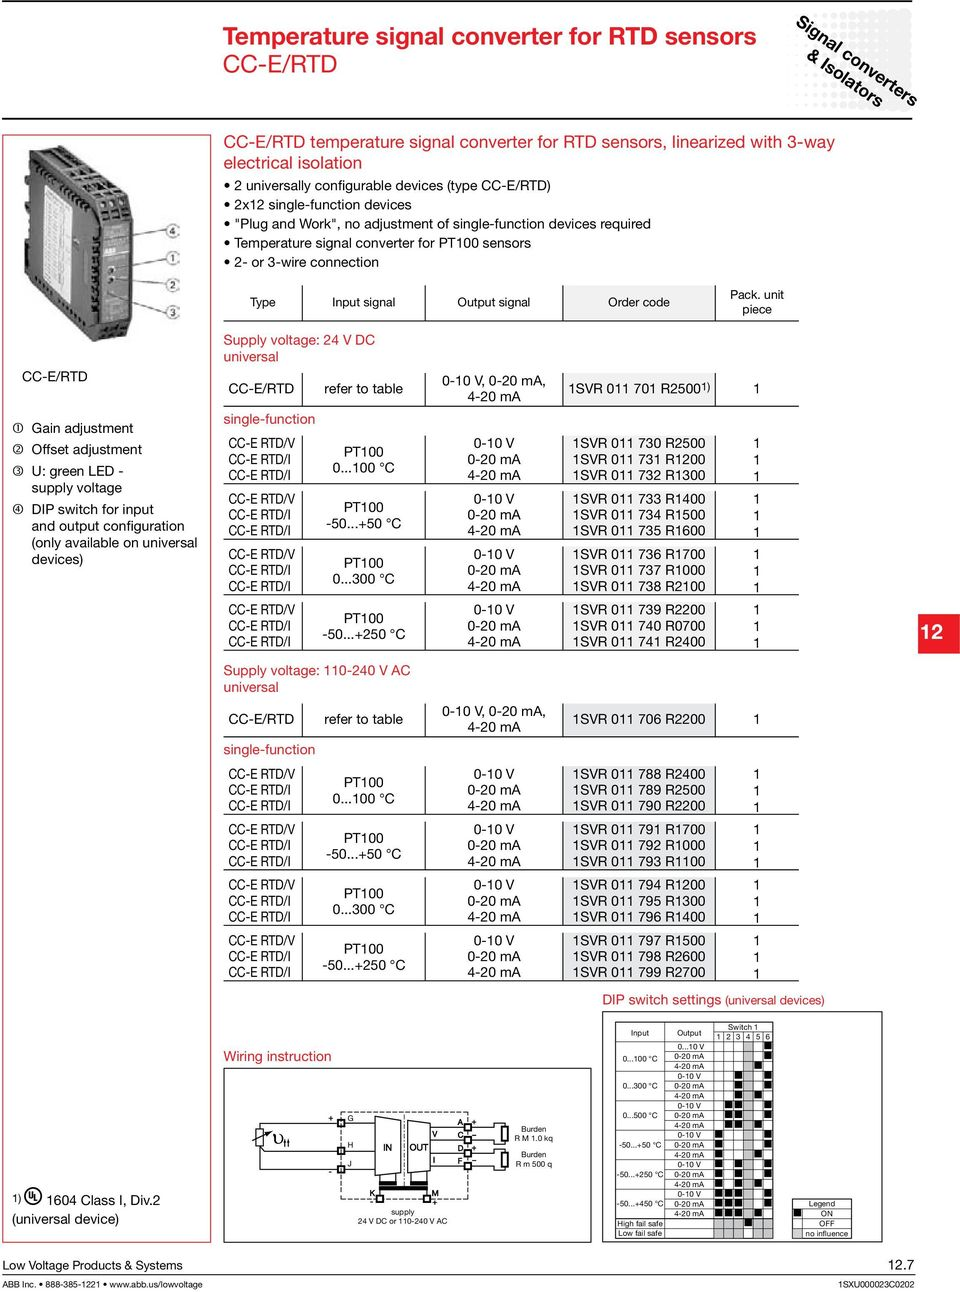 signal Output signal Order code piece CC-E/RTD Gain adjustment Offset adjustment U: green LED - supply voltage DIP switch for input and output configuration (only available on universal devices)